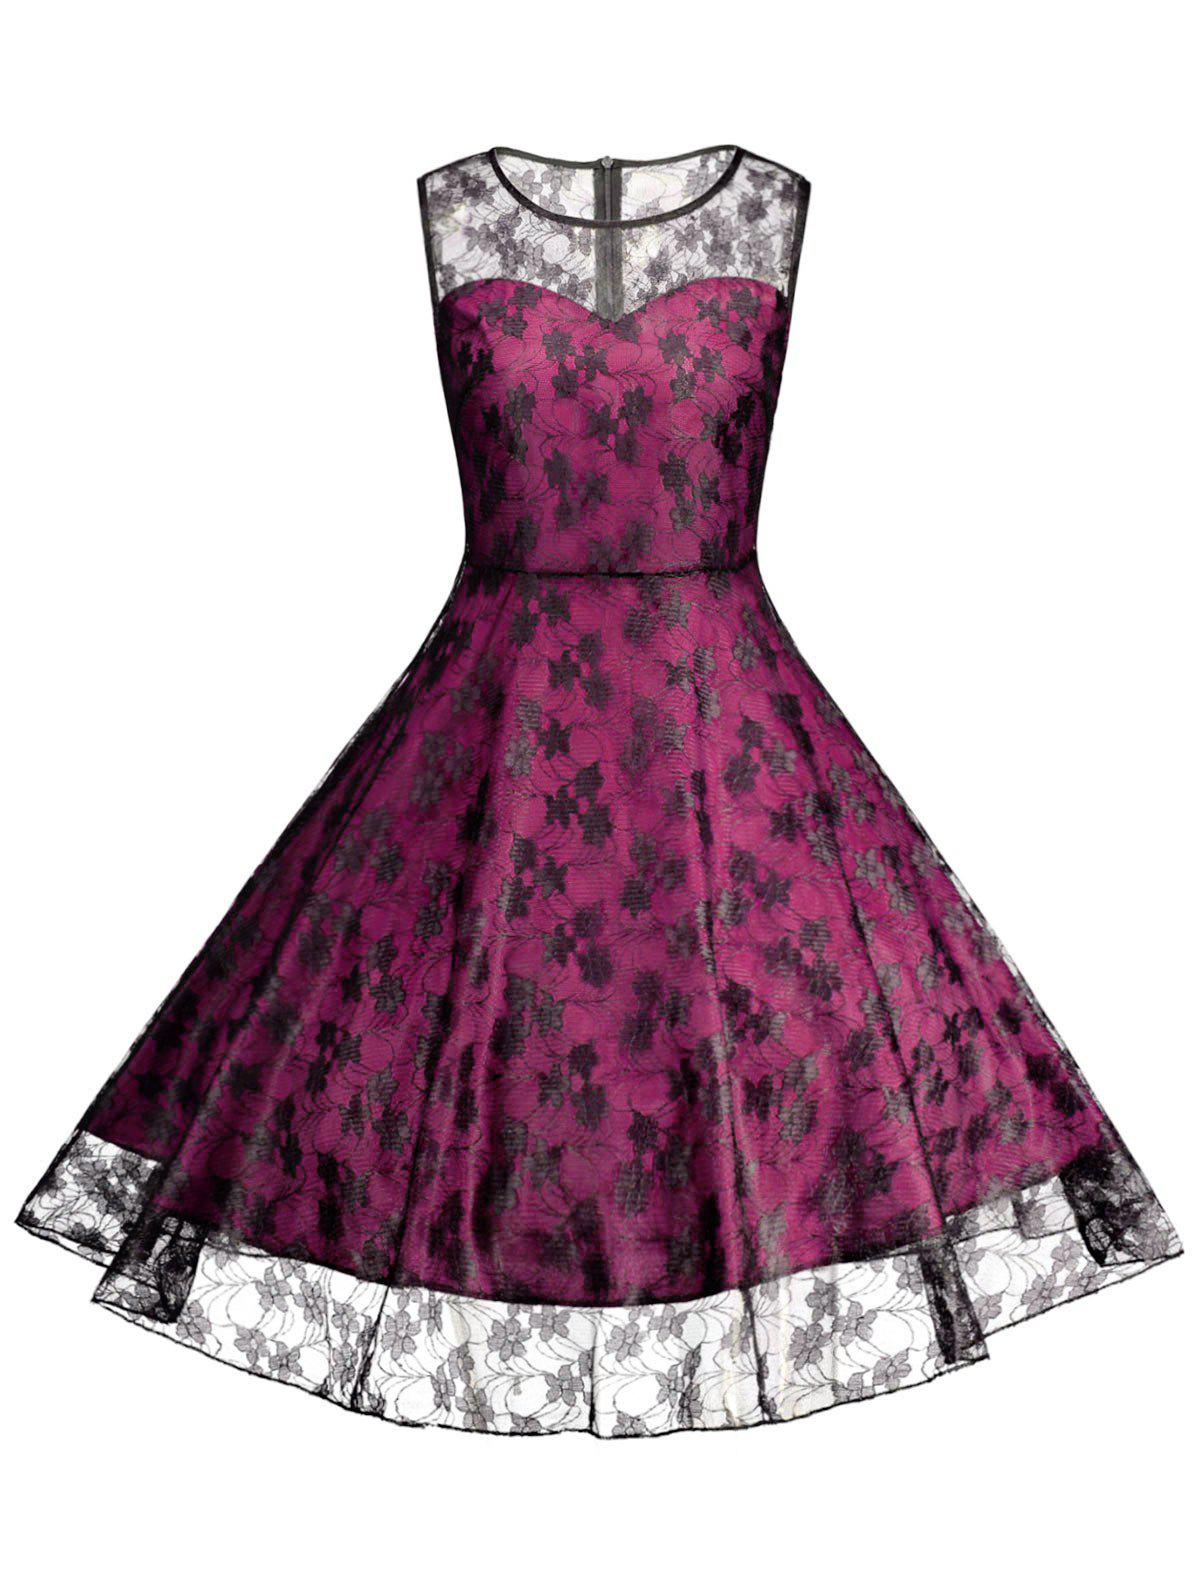 Plus Size Lace Cocktail Formal Party DressWOMEN<br><br>Size: 2XL; Color: TUTTI FRUTTI; Style: Vintage; Material: Lace,Polyester; Silhouette: A-Line; Dresses Length: Knee-Length; Neckline: Round Collar; Sleeve Length: Sleeveless; Waist: High Waisted; Embellishment: Lace; Pattern Type: Floral; With Belt: No; Season: Summer; Weight: 0.2400kg; Package Contents: 1 x Dress;